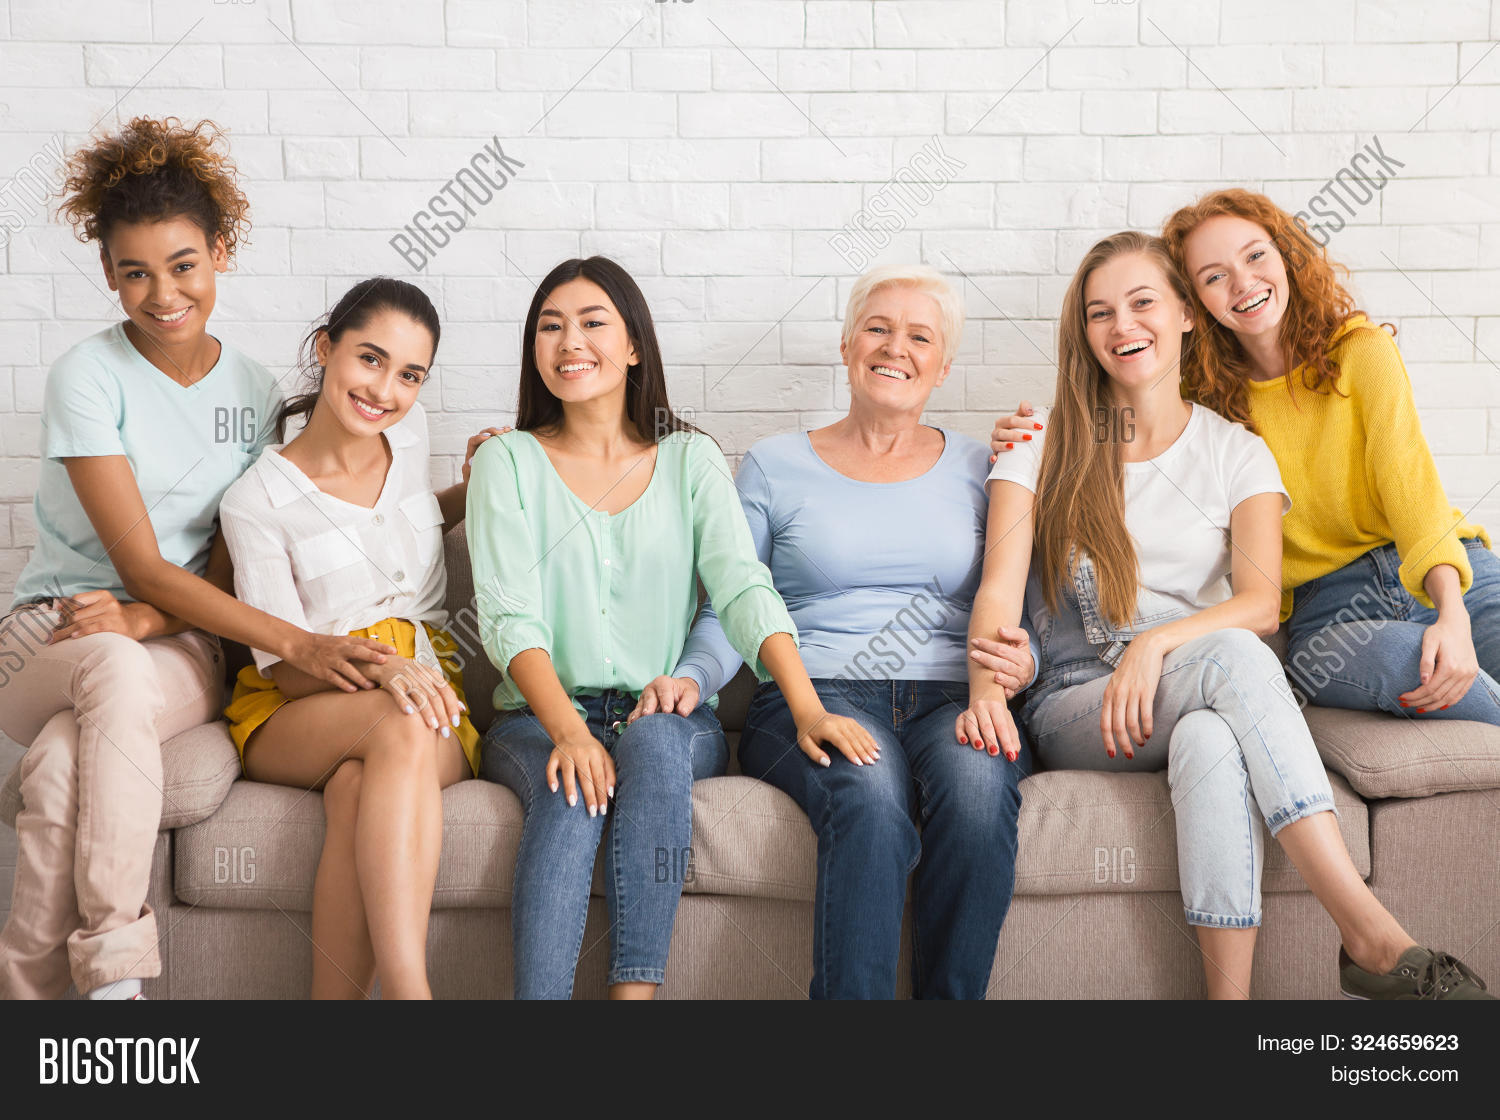 adult,asian,association,background,camera,caucasian,community,concept,couch,diverse,diversity,elderly,equality,ethnicity,european,female,friends,friendship,gathering,generation,girls,group,happy,hugging,indoor,international,ladies,lifestyle,looking,mature,millennial,multiethnic,organization,people,senior,sitting,smiling,social,sofa,support,team,together,togetherness,unity,wall,white,women,young